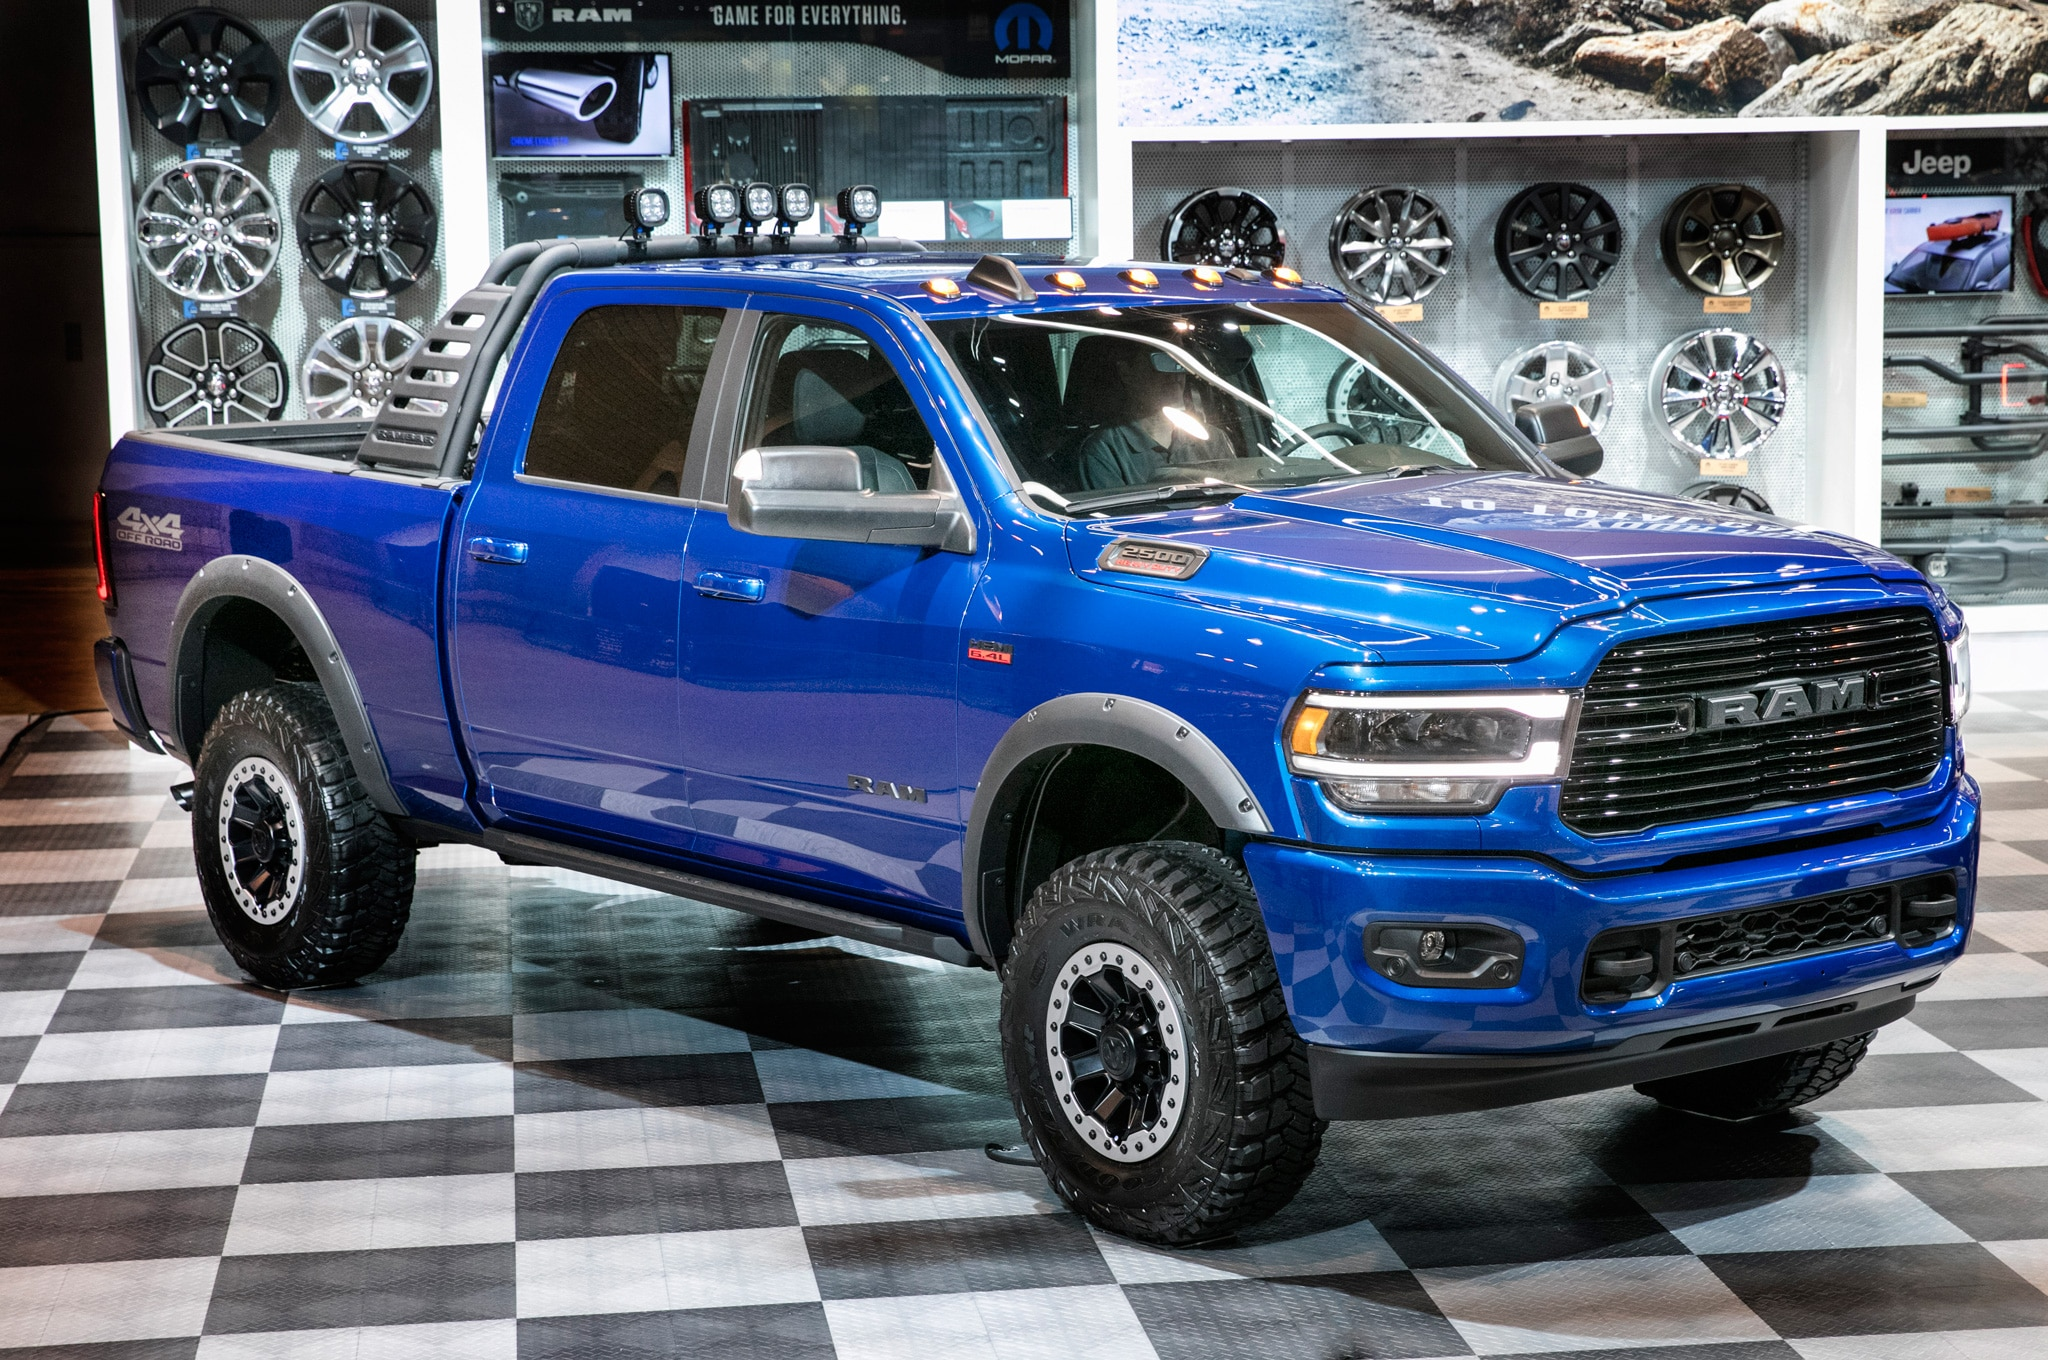 2019 Chicago Auto Show Mopar Accessories For The Ram Heavy Duty